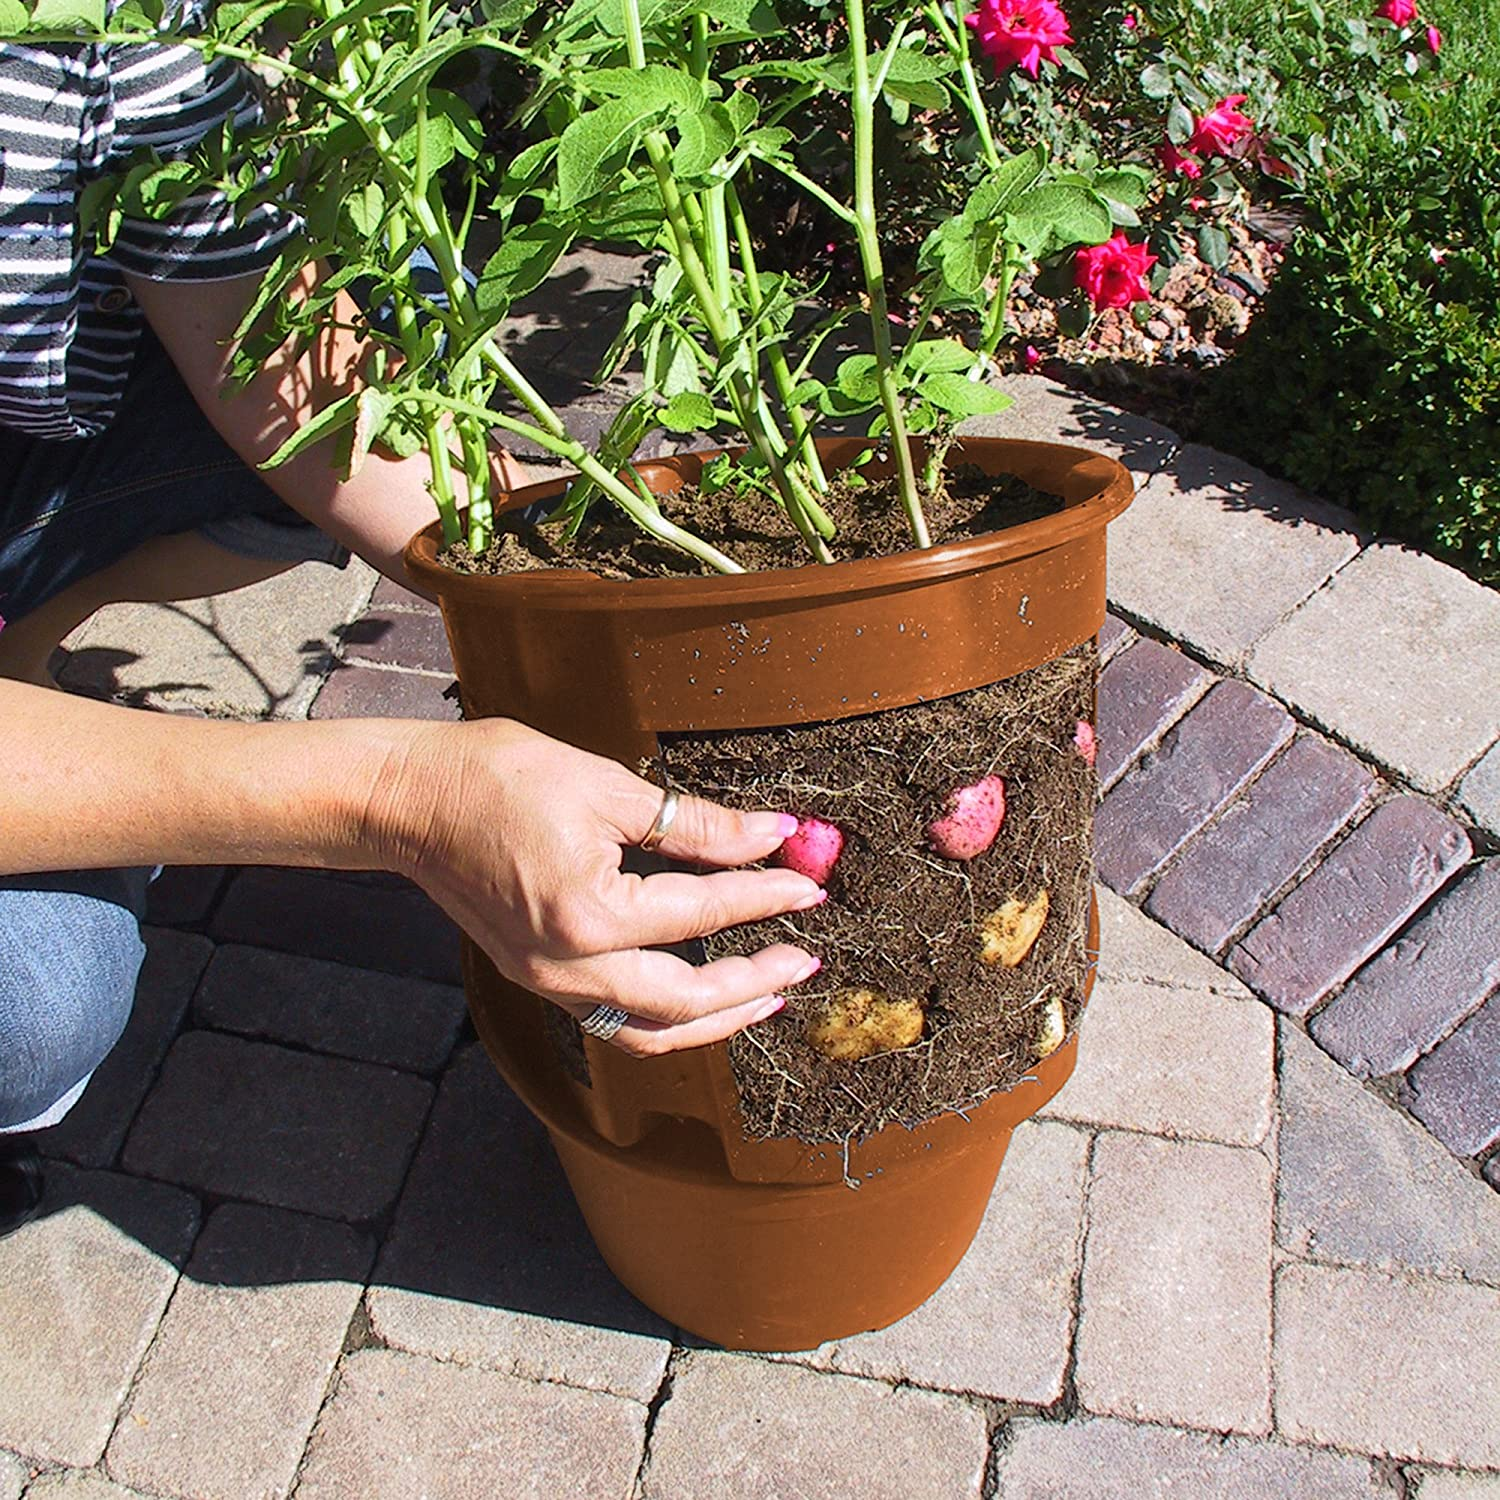 How to grow Potato plants in pots